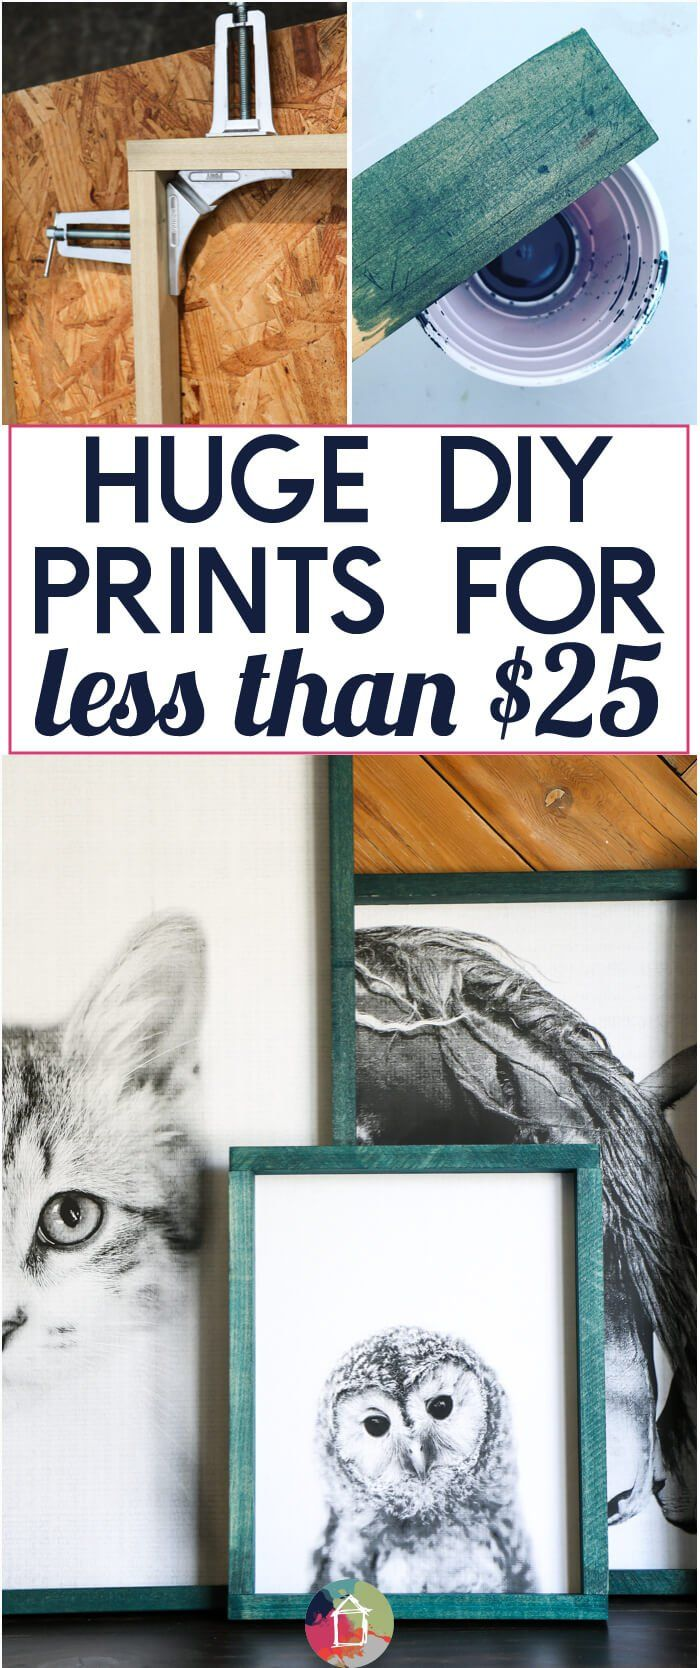 Large wall art can be soooo expensive, but it doesn't have to be! You can create large DIY art without being artistic and without spending much money. This full tutorial shows you how to make huge photos with engineer prints & make easy DIY frames for them. Click through to see the tutorial!